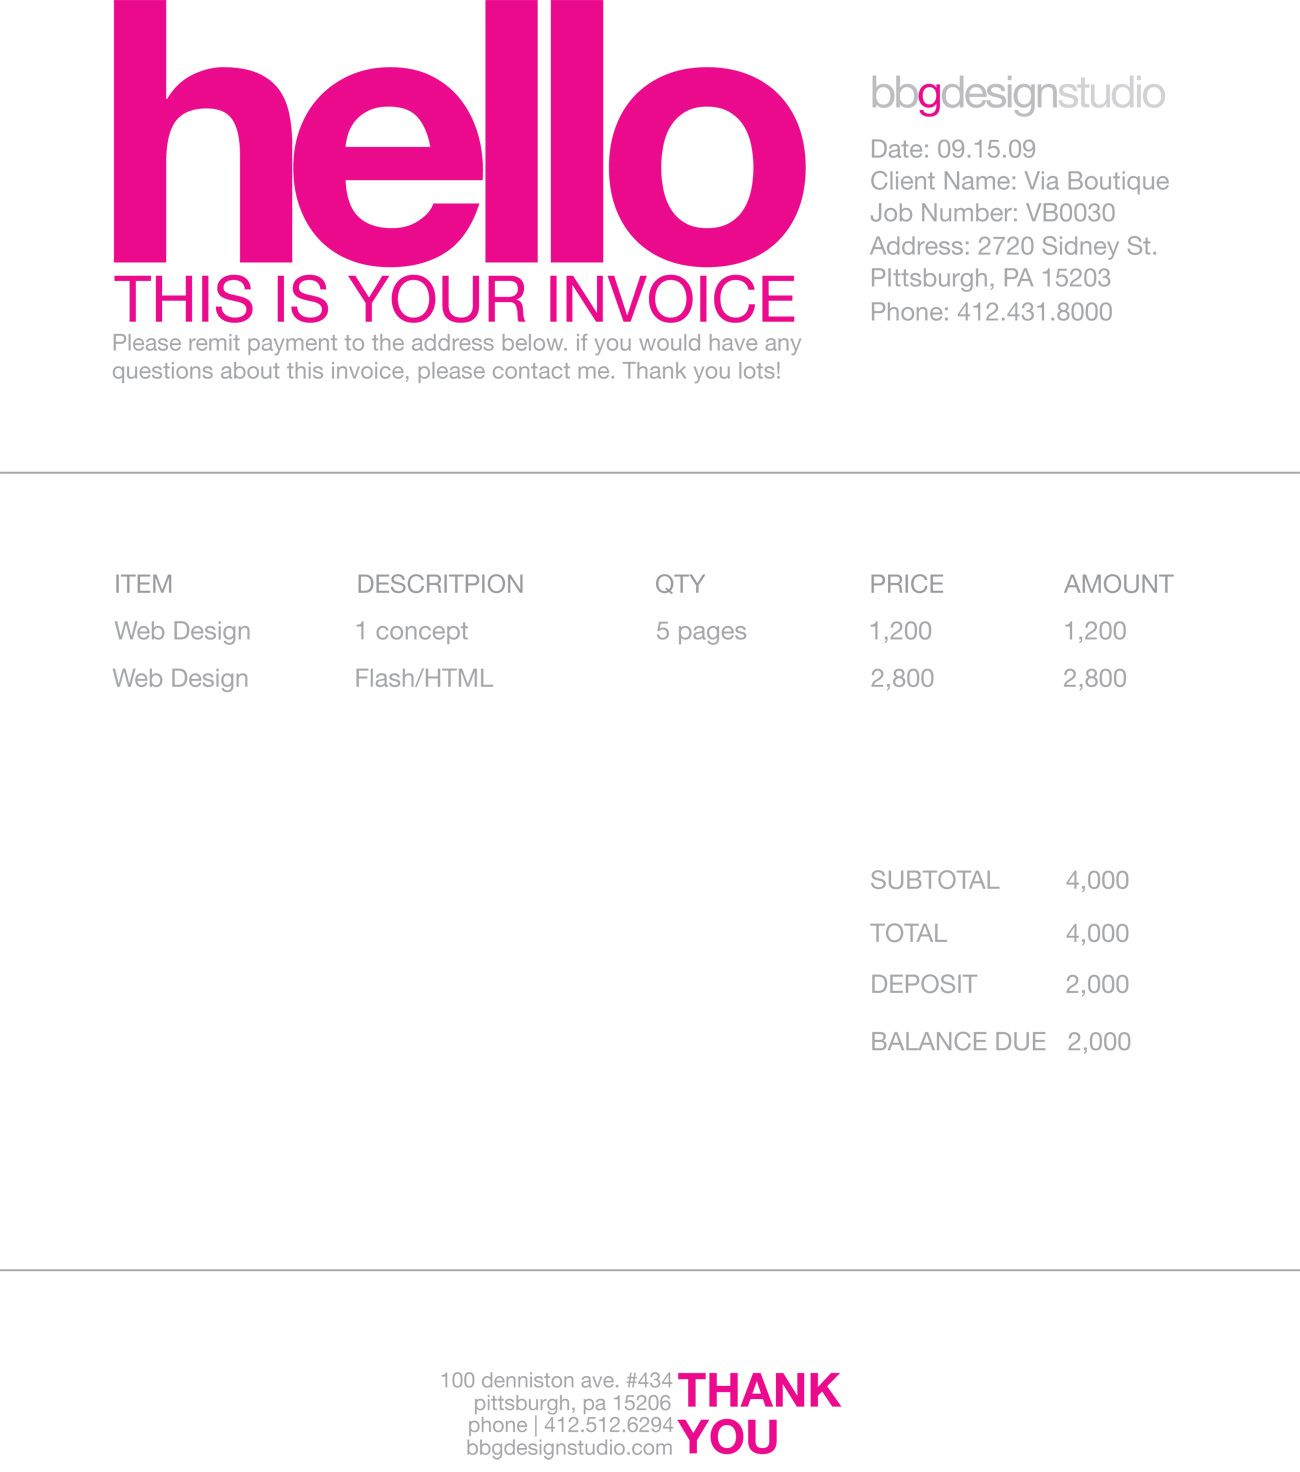 Pigbrotherus  Personable  Images About Invoice Design On Pinterest With Exciting Free Download Invoice Template Besides Generic Invoice Pdf Furthermore Commercial Invoices With Attractive Black Invoice Template Also Free Invoice Forms To Print In Addition Ebay Seller Invoice And Excel Invoice Template Free As Well As Aynax Free Invoices Additionally Sample Commercial Invoice From Pinterestcom With Pigbrotherus  Exciting  Images About Invoice Design On Pinterest With Attractive Free Download Invoice Template Besides Generic Invoice Pdf Furthermore Commercial Invoices And Personable Black Invoice Template Also Free Invoice Forms To Print In Addition Ebay Seller Invoice From Pinterestcom